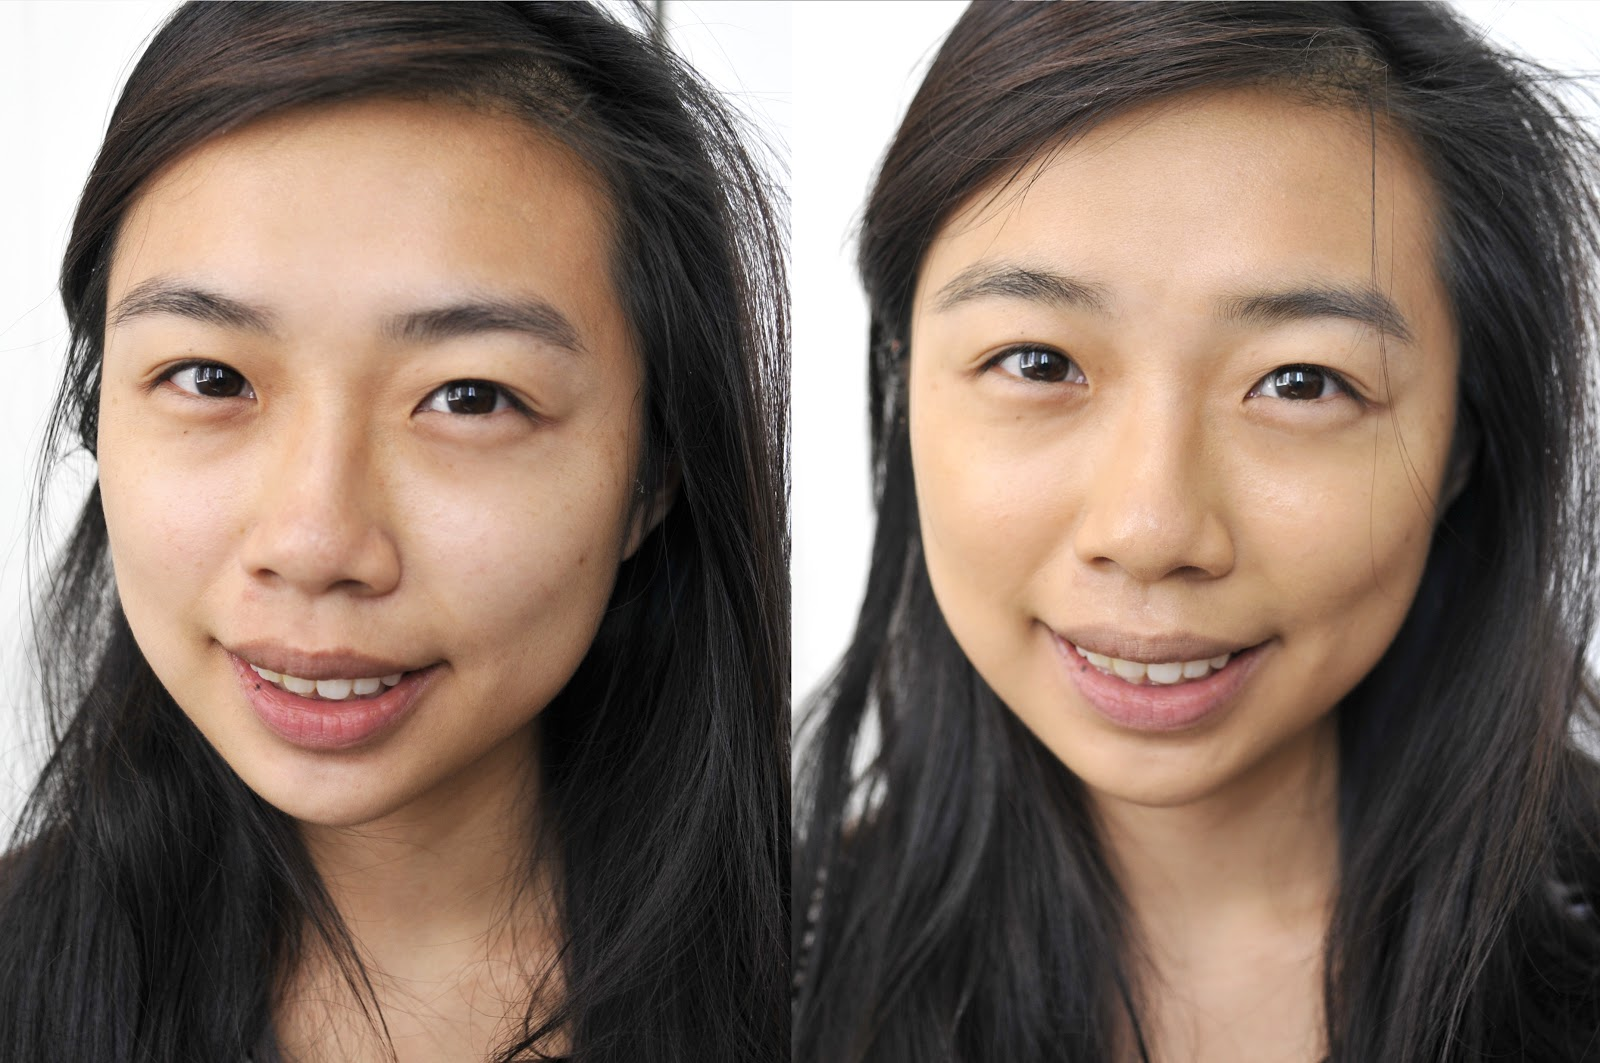 mac foundation before and after. application is atypical. mac foundation before and after